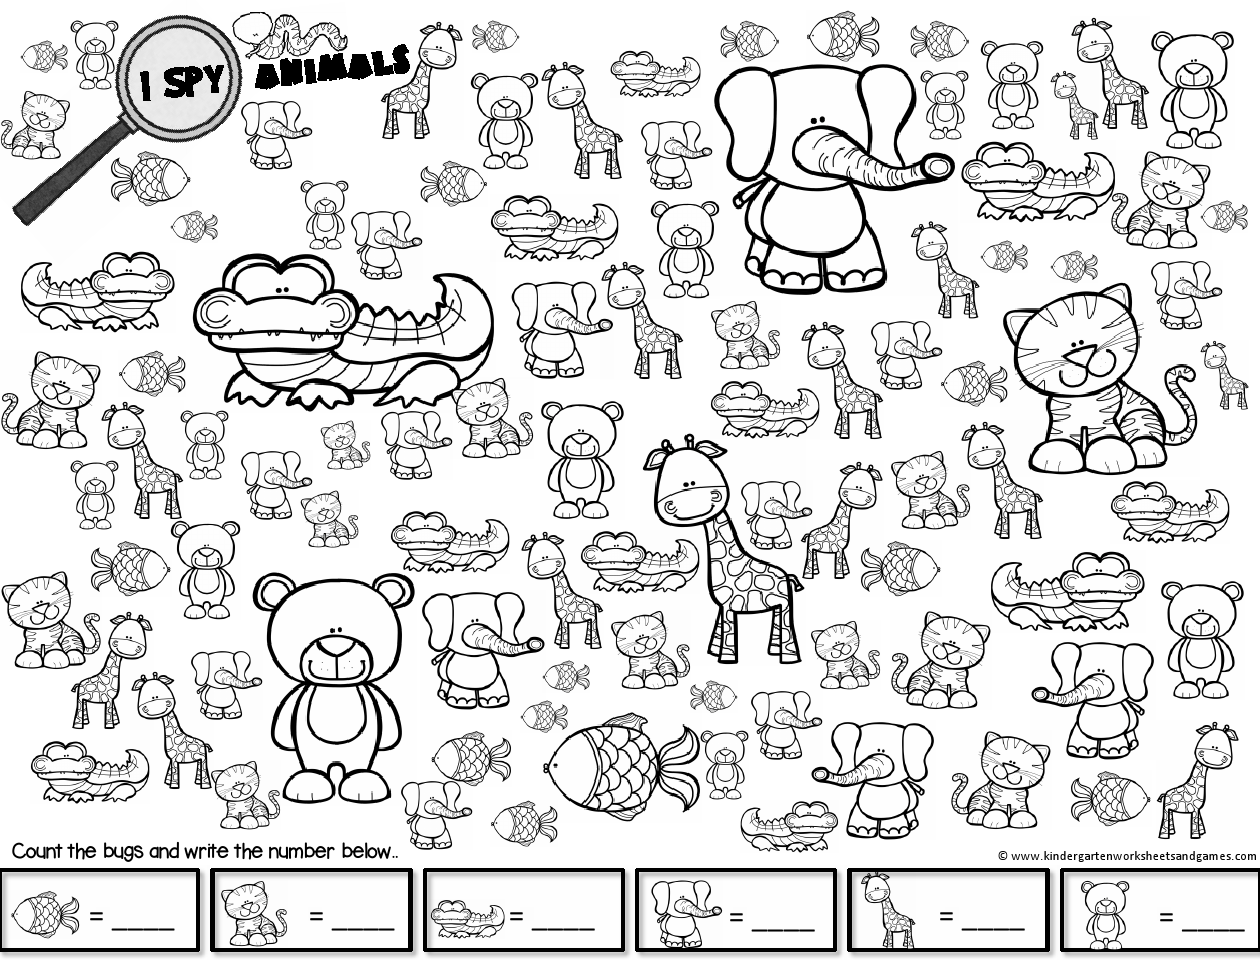 Kids Crafts Coloring Pages Spy Animals And Spy Farm Animals